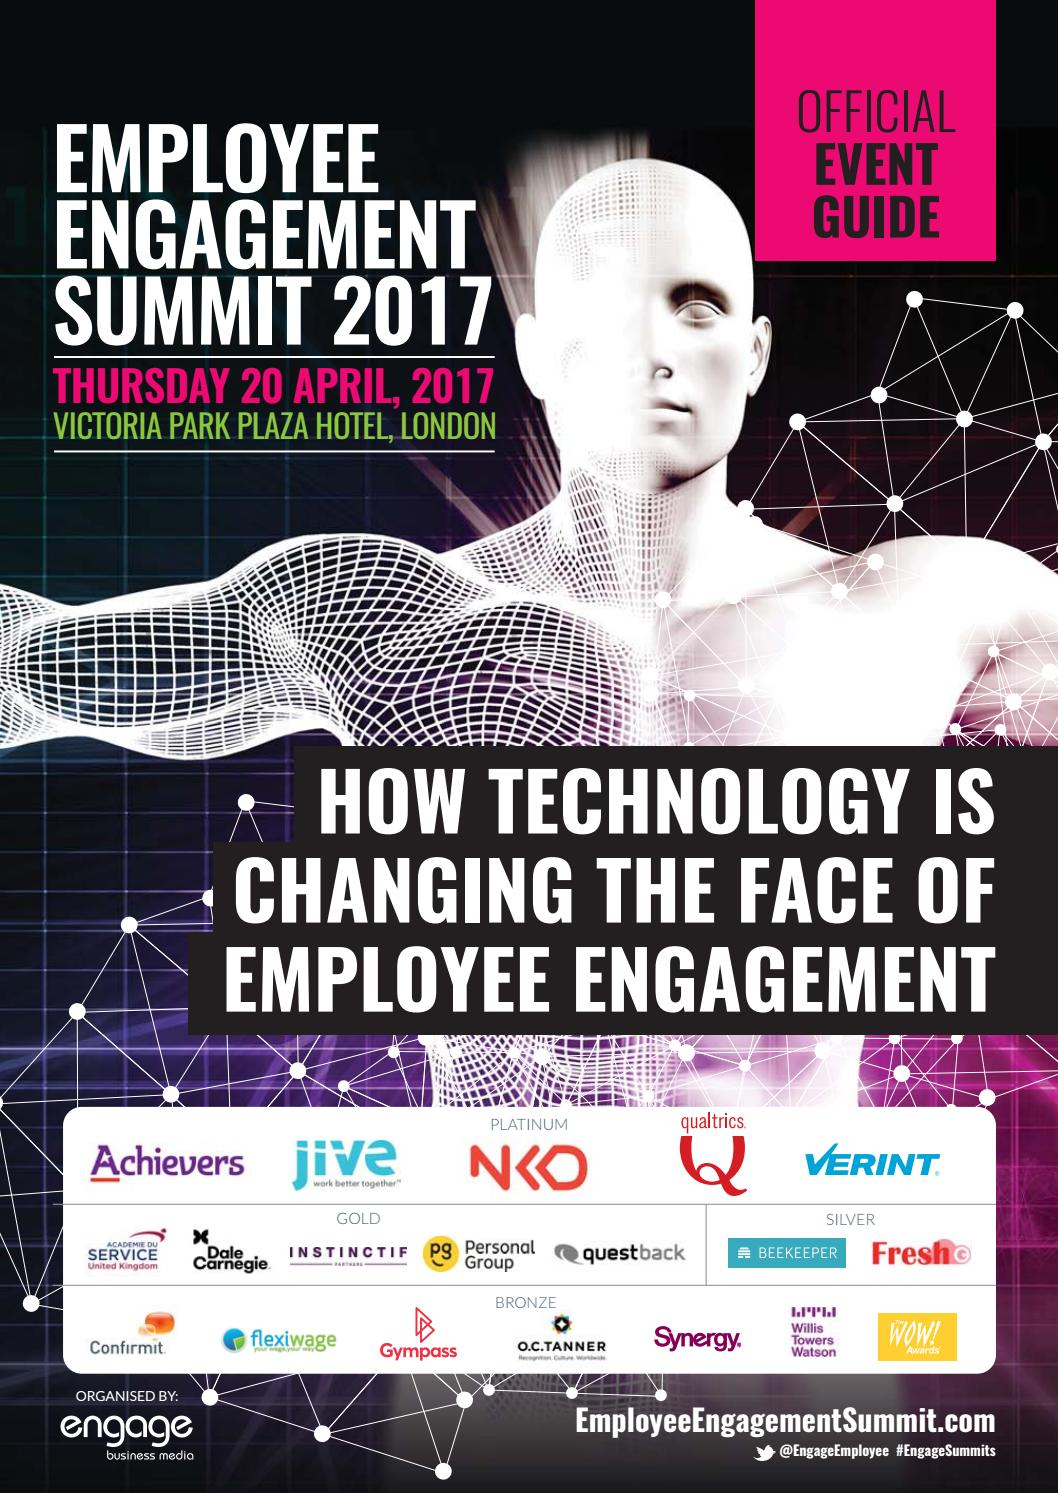 2017 Employee Engagement Summit Guide by Engage Business Media - issuu